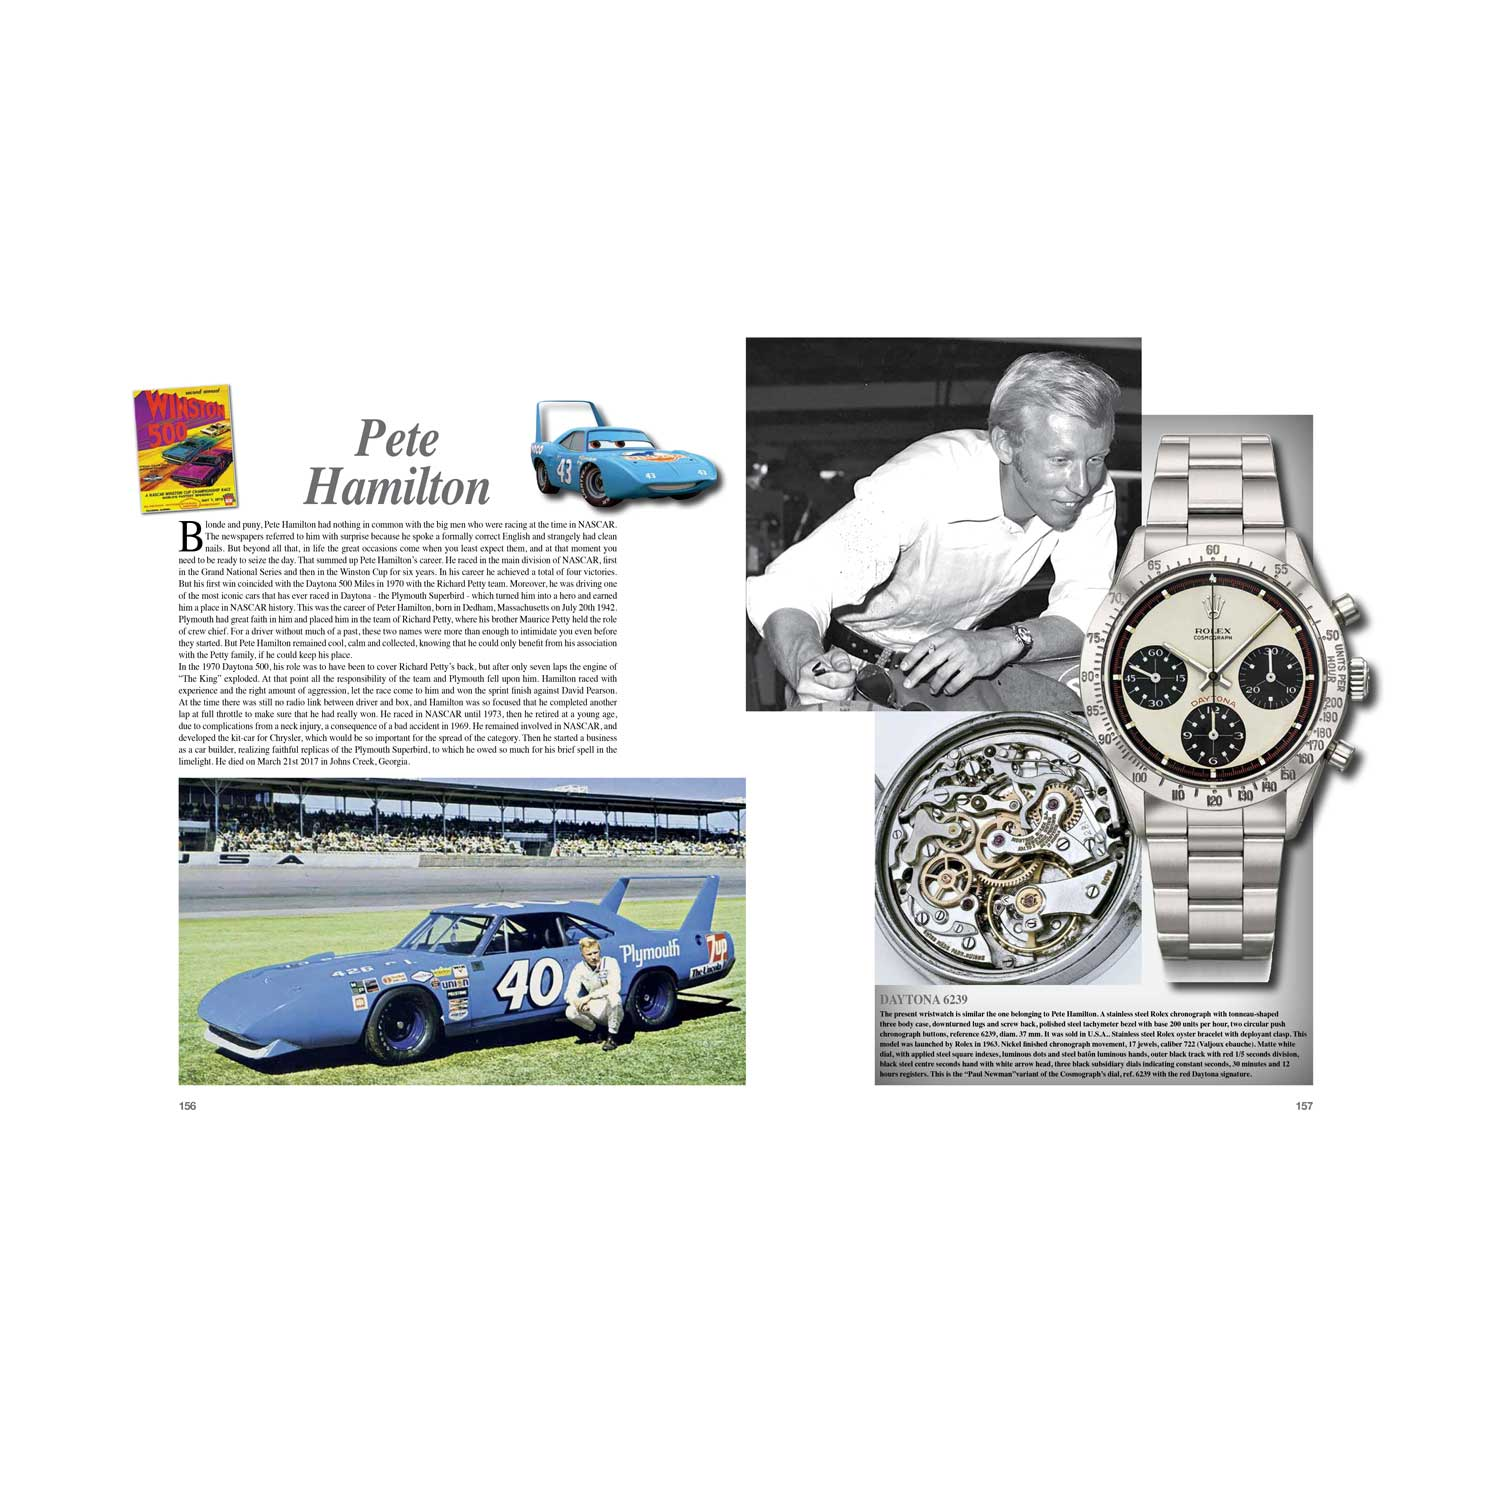 Time to Race – Watches and Speed Stories of men and machines (Image: John Goldberger)